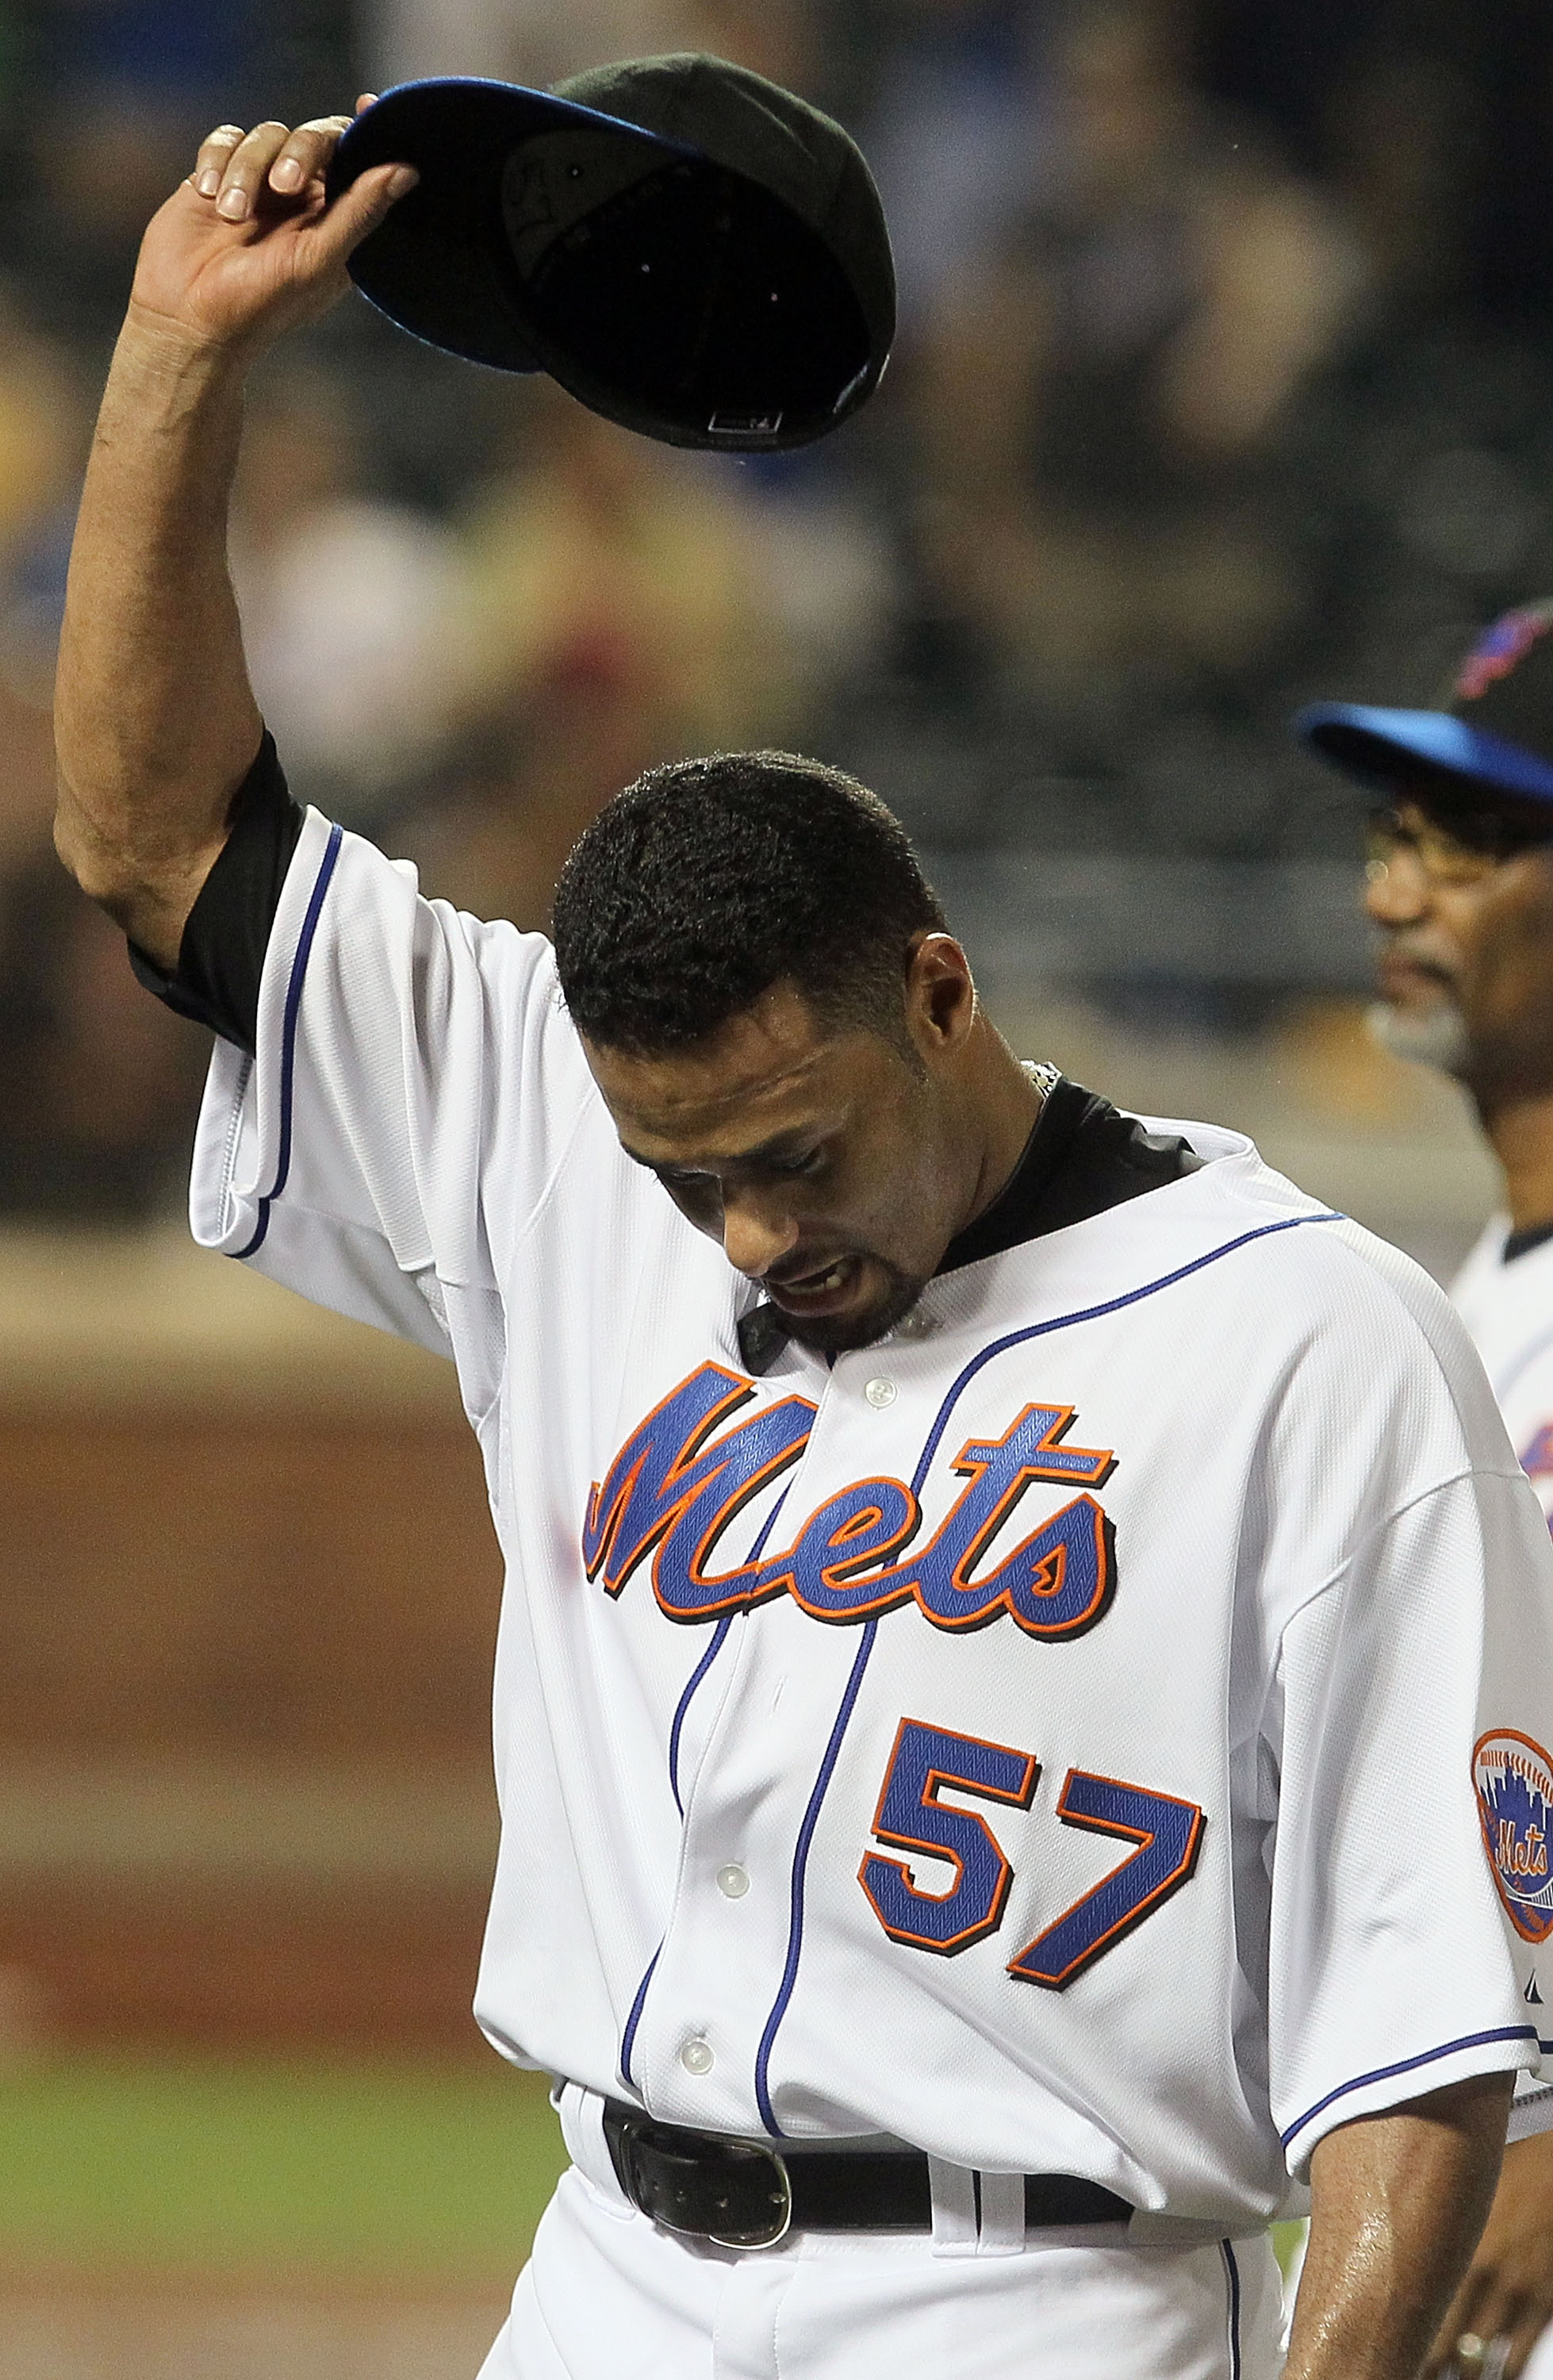 NEW YORK - JULY 06:  Johan Santana #57 of the New York Mets salutes the crowd as he walks off the field after pitching a shutout against the Cincinnati Reds on July 6, 2010 at Citi Field in the Flushing neighborhood of the Queens borough of New York City.